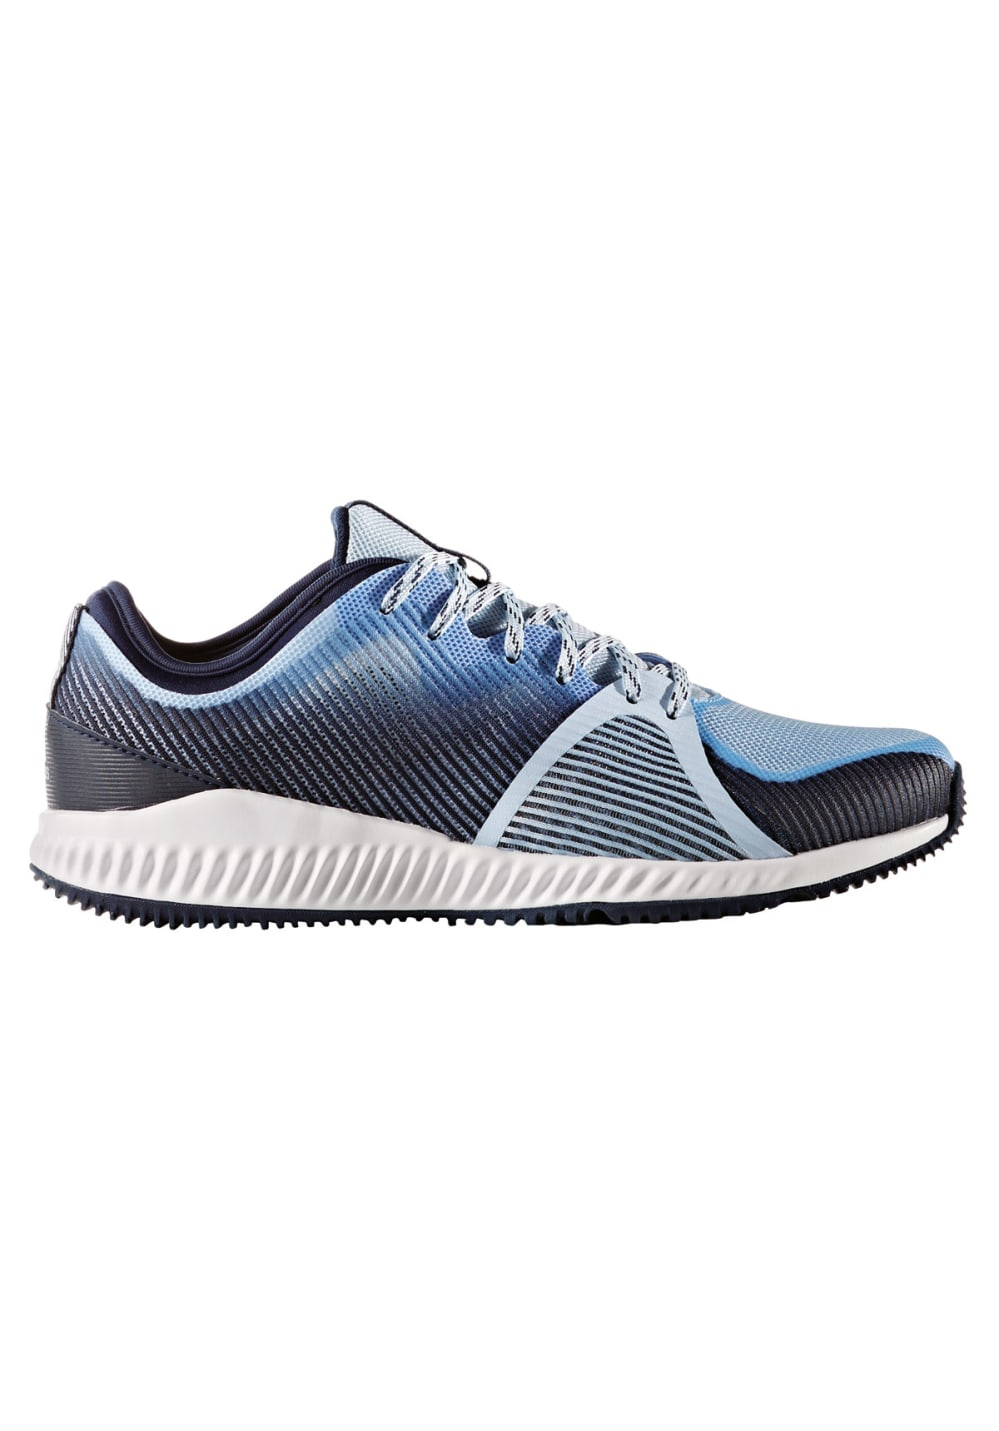 c37ffb689 adidas Crazytrain Bounce - Fitness shoes for Women - Blue